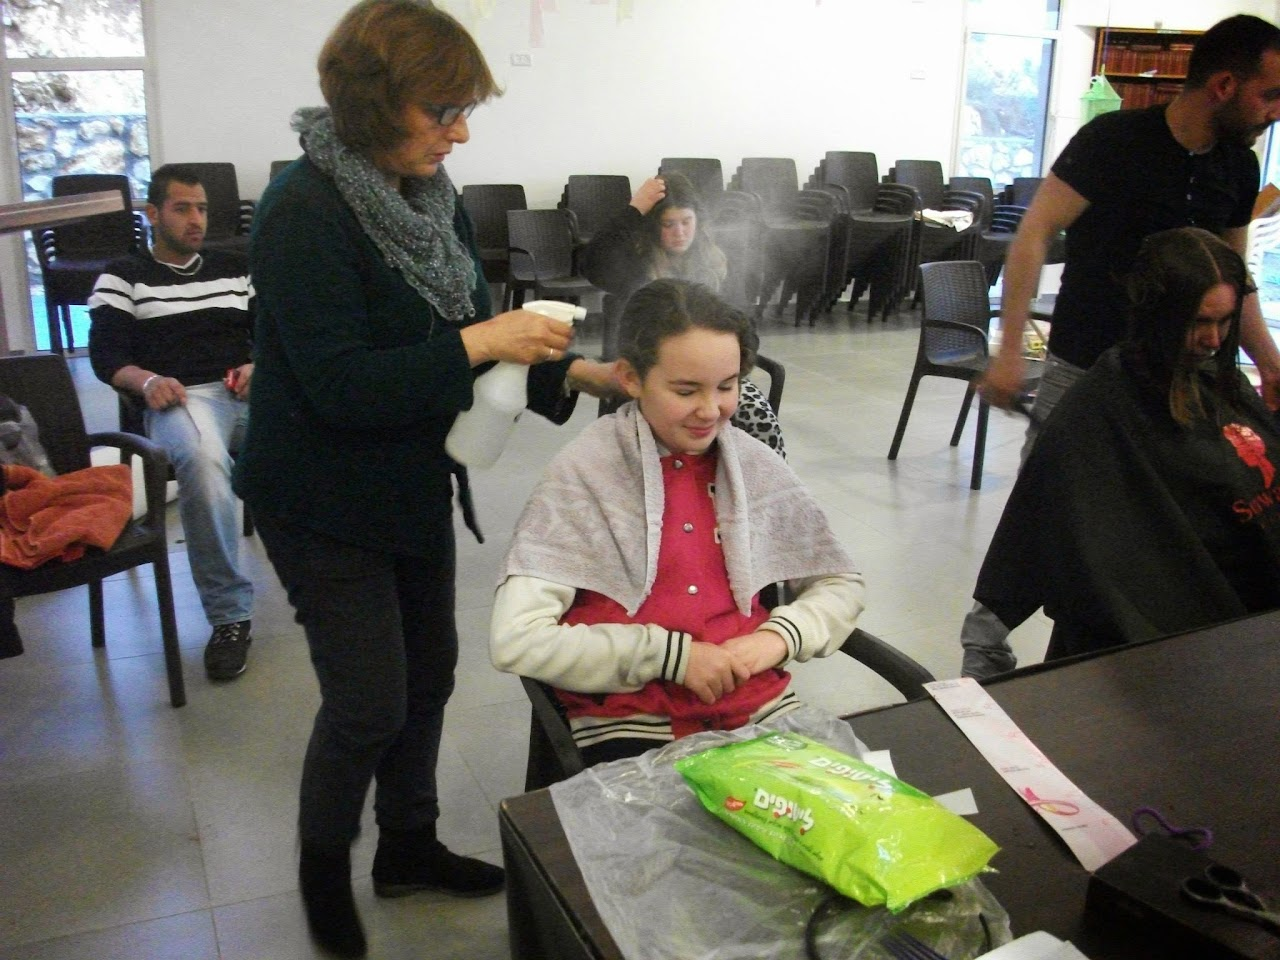 Donating hair for cancer patients 2014  - 1890425_539676646148633_122648180_o.jpg